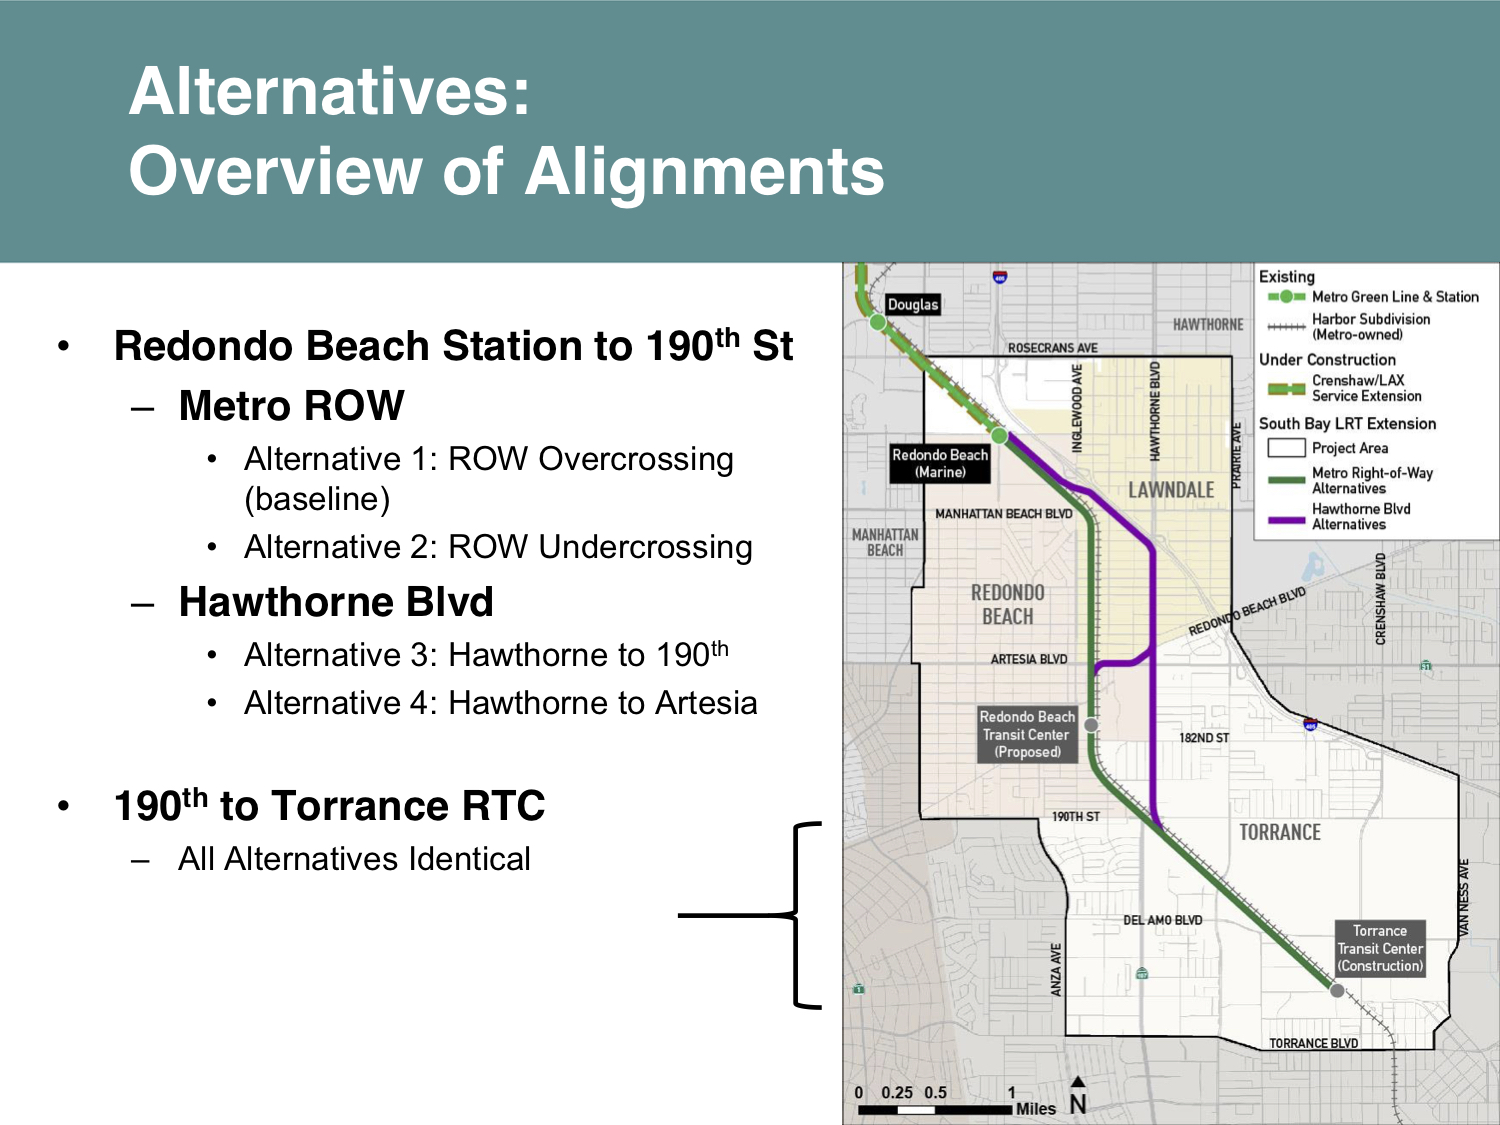 Update on Green Line South Bay extension to Torrance - The Source on